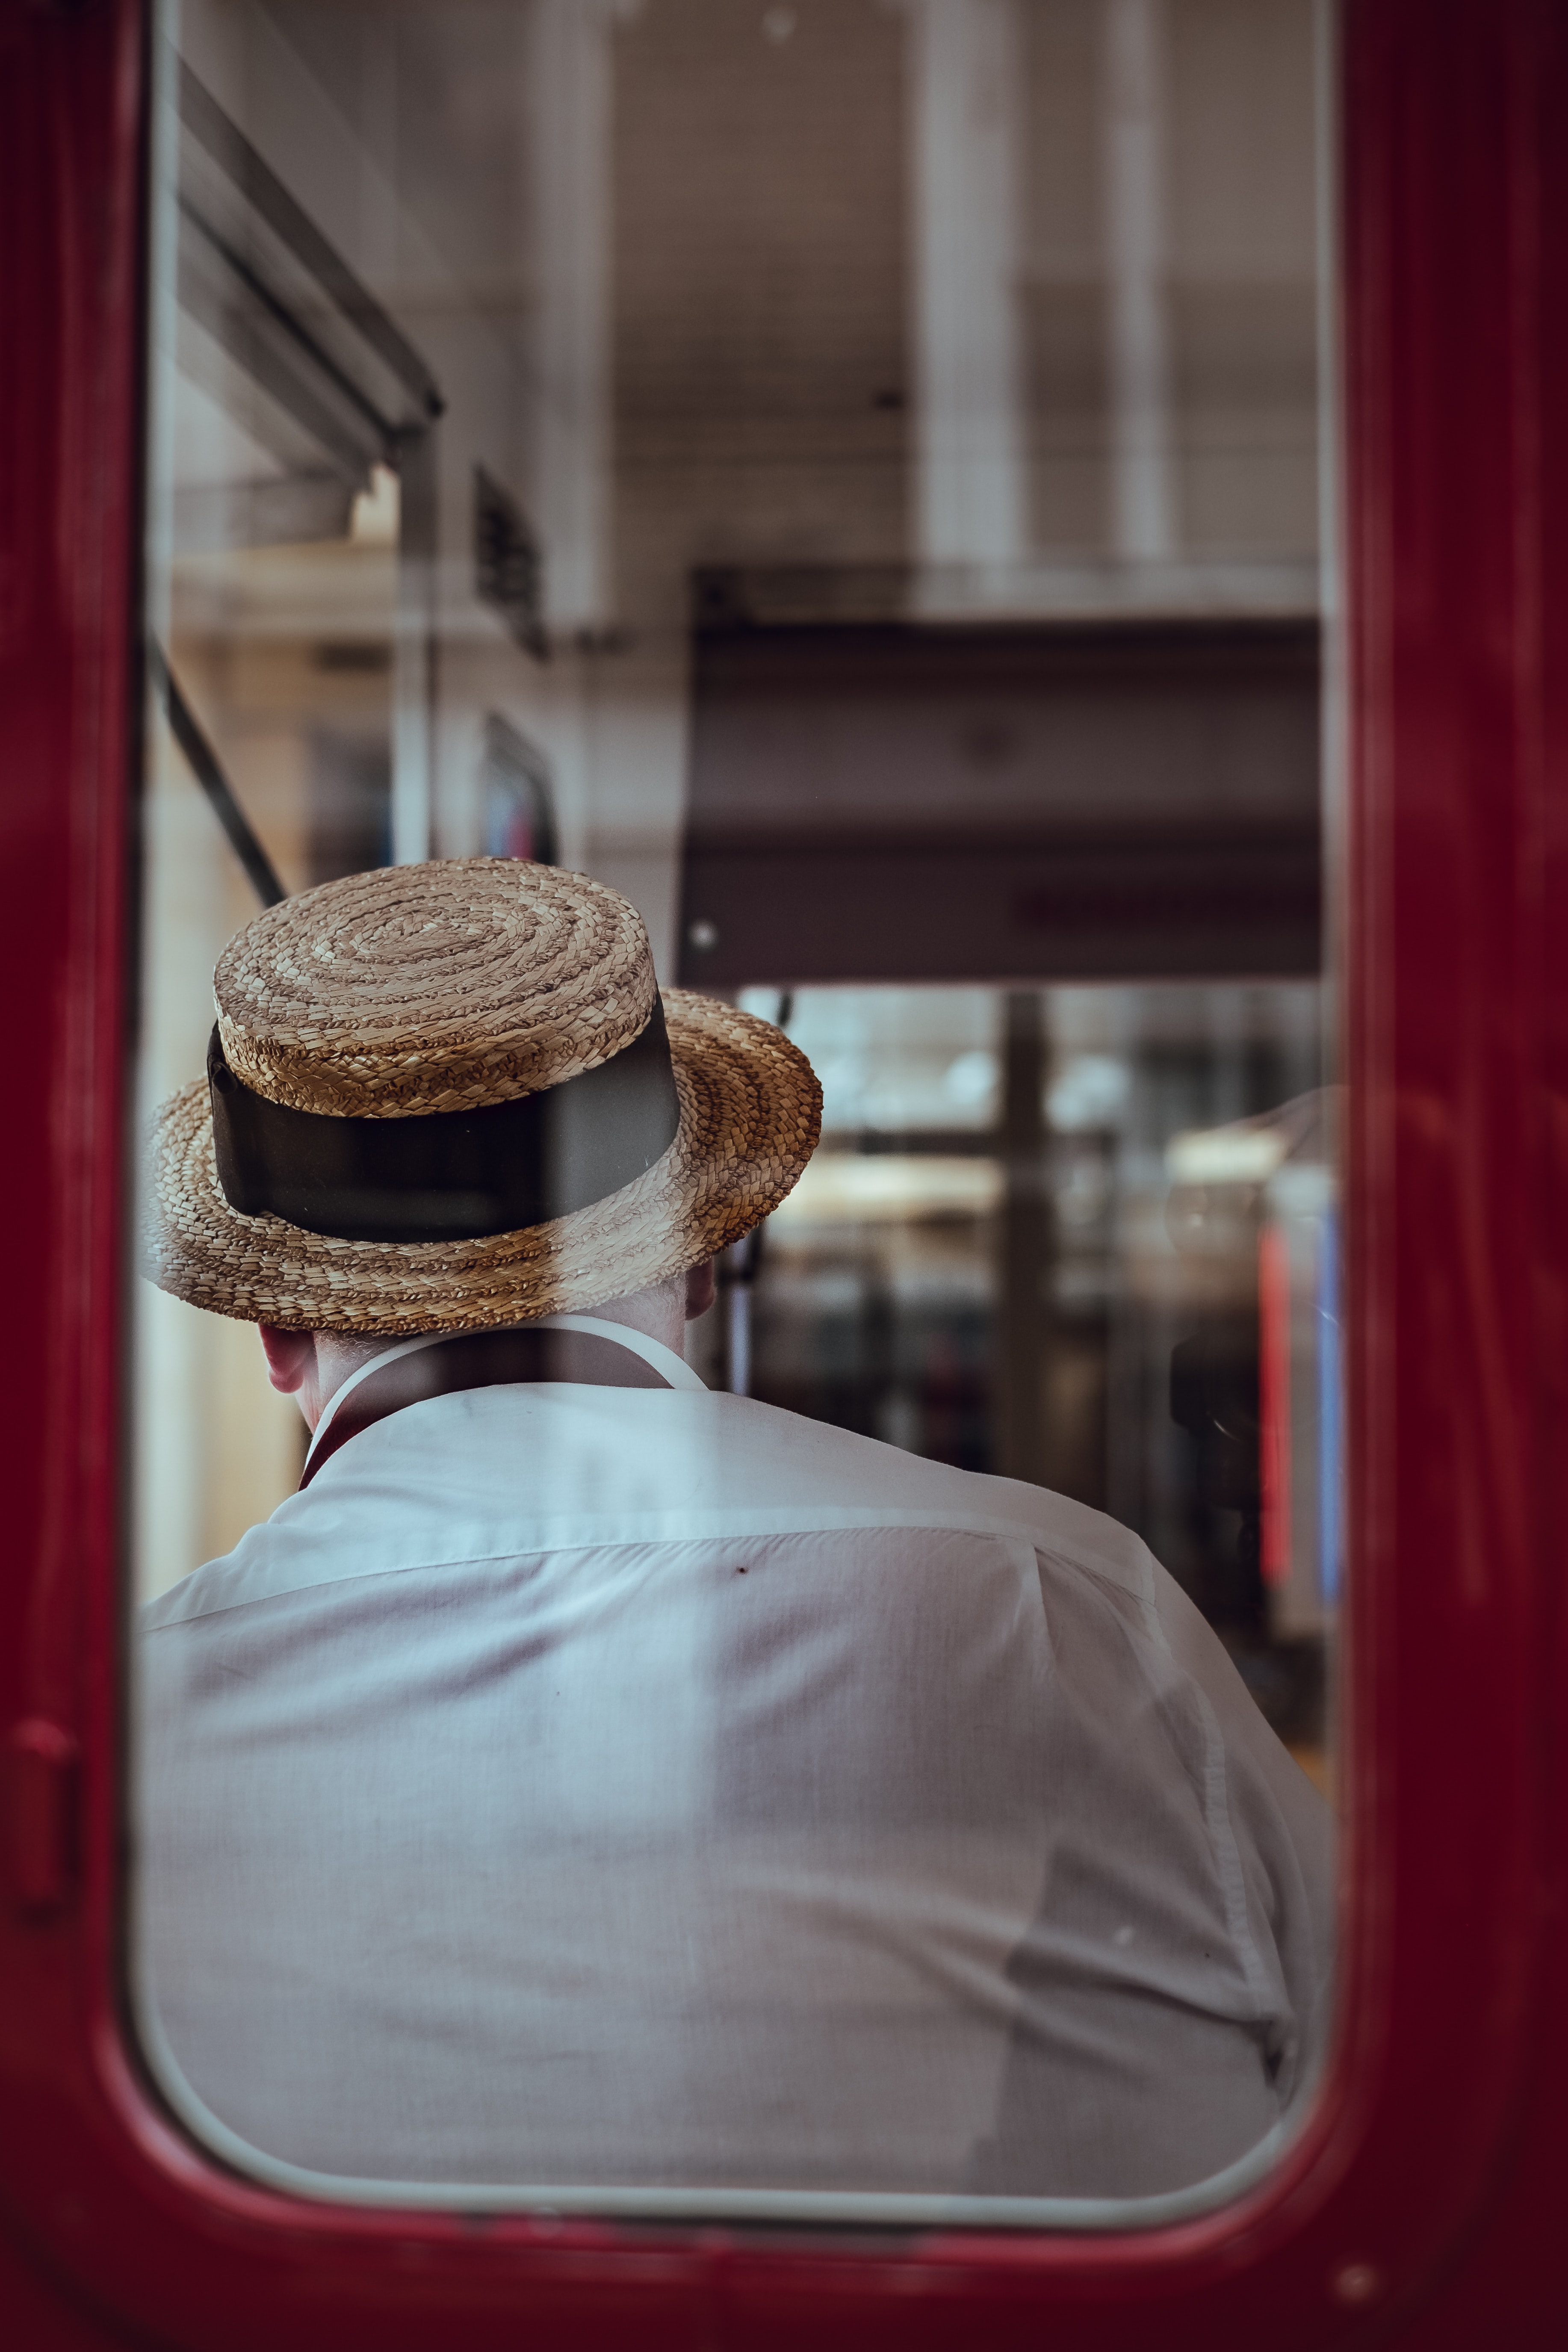 A man in a straw hat leans against a train's window, facing away from the camera